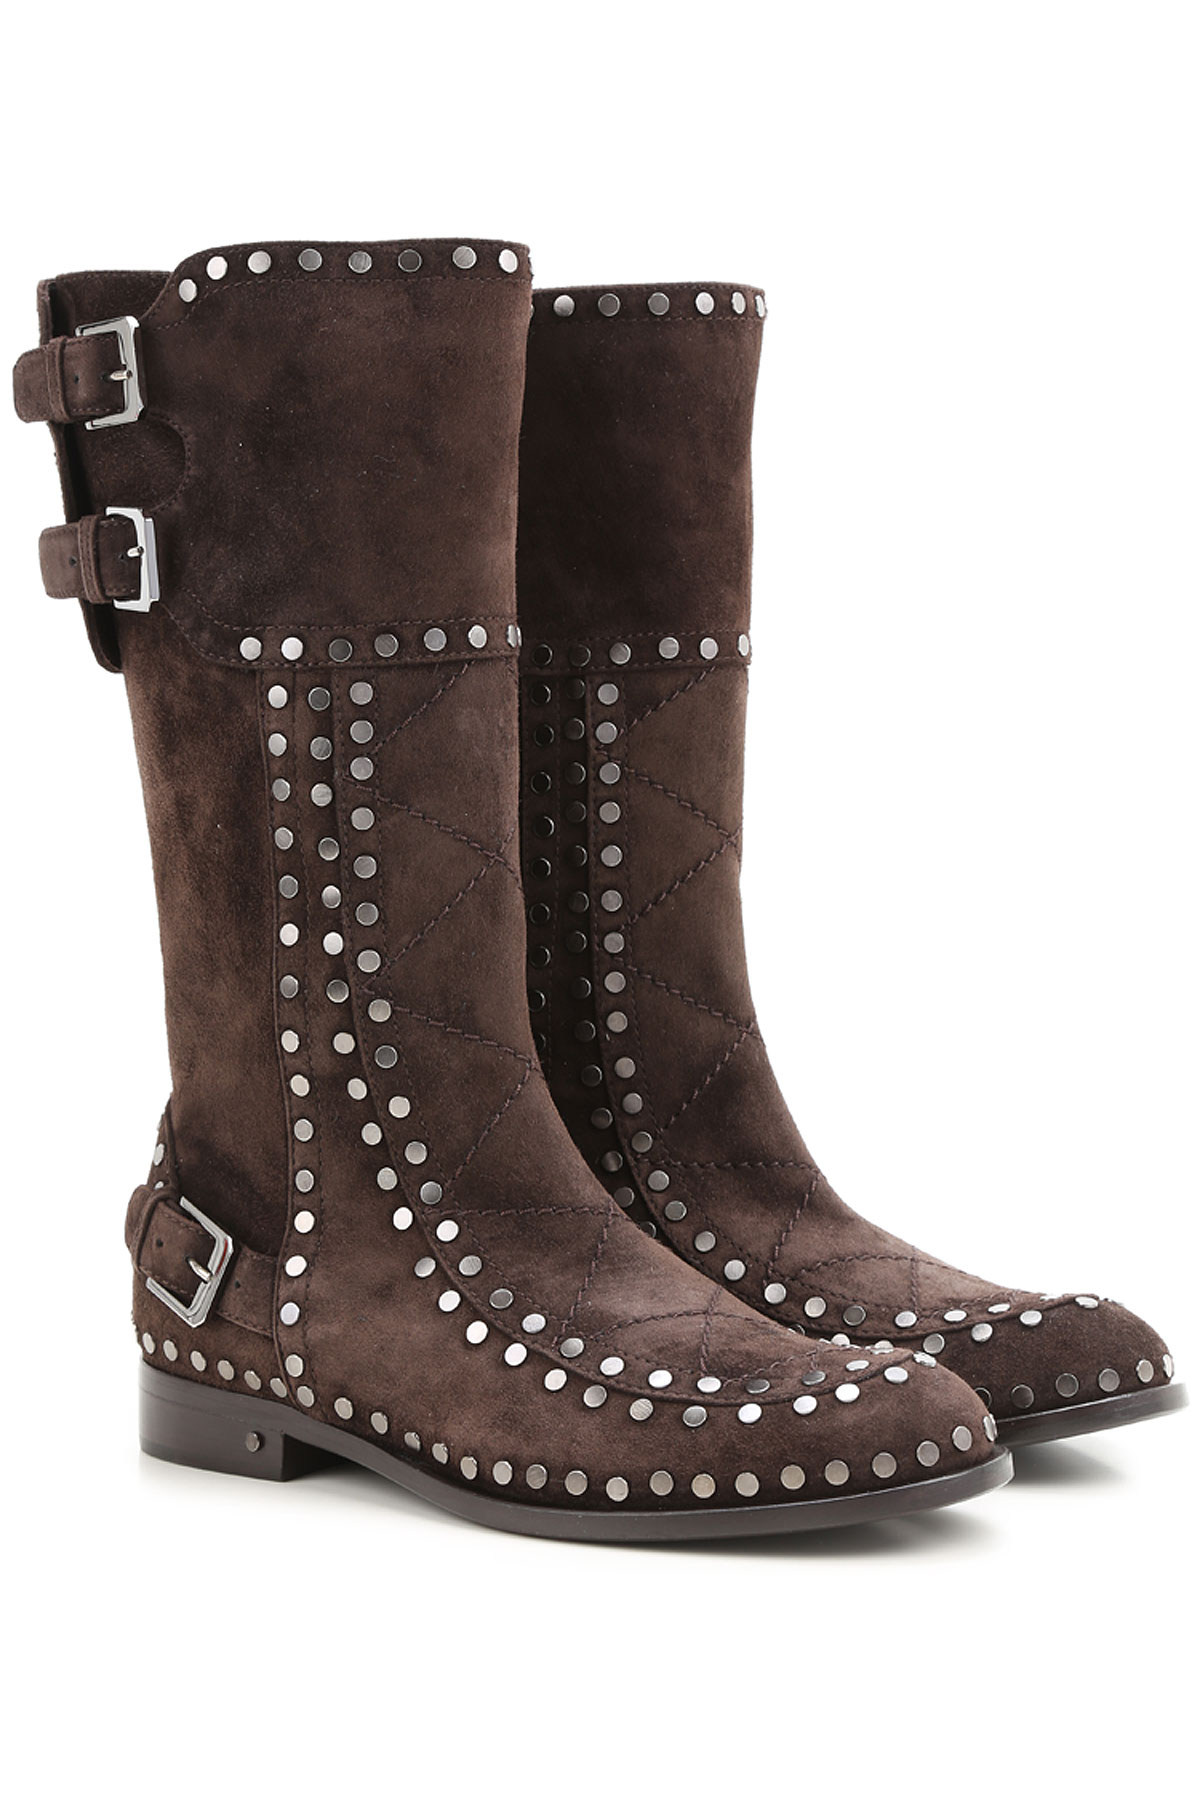 Image of Laurence Dacade Boots for Women, Booties, Dark Brown, Suede leather, 2017, 10.5 8 8.5